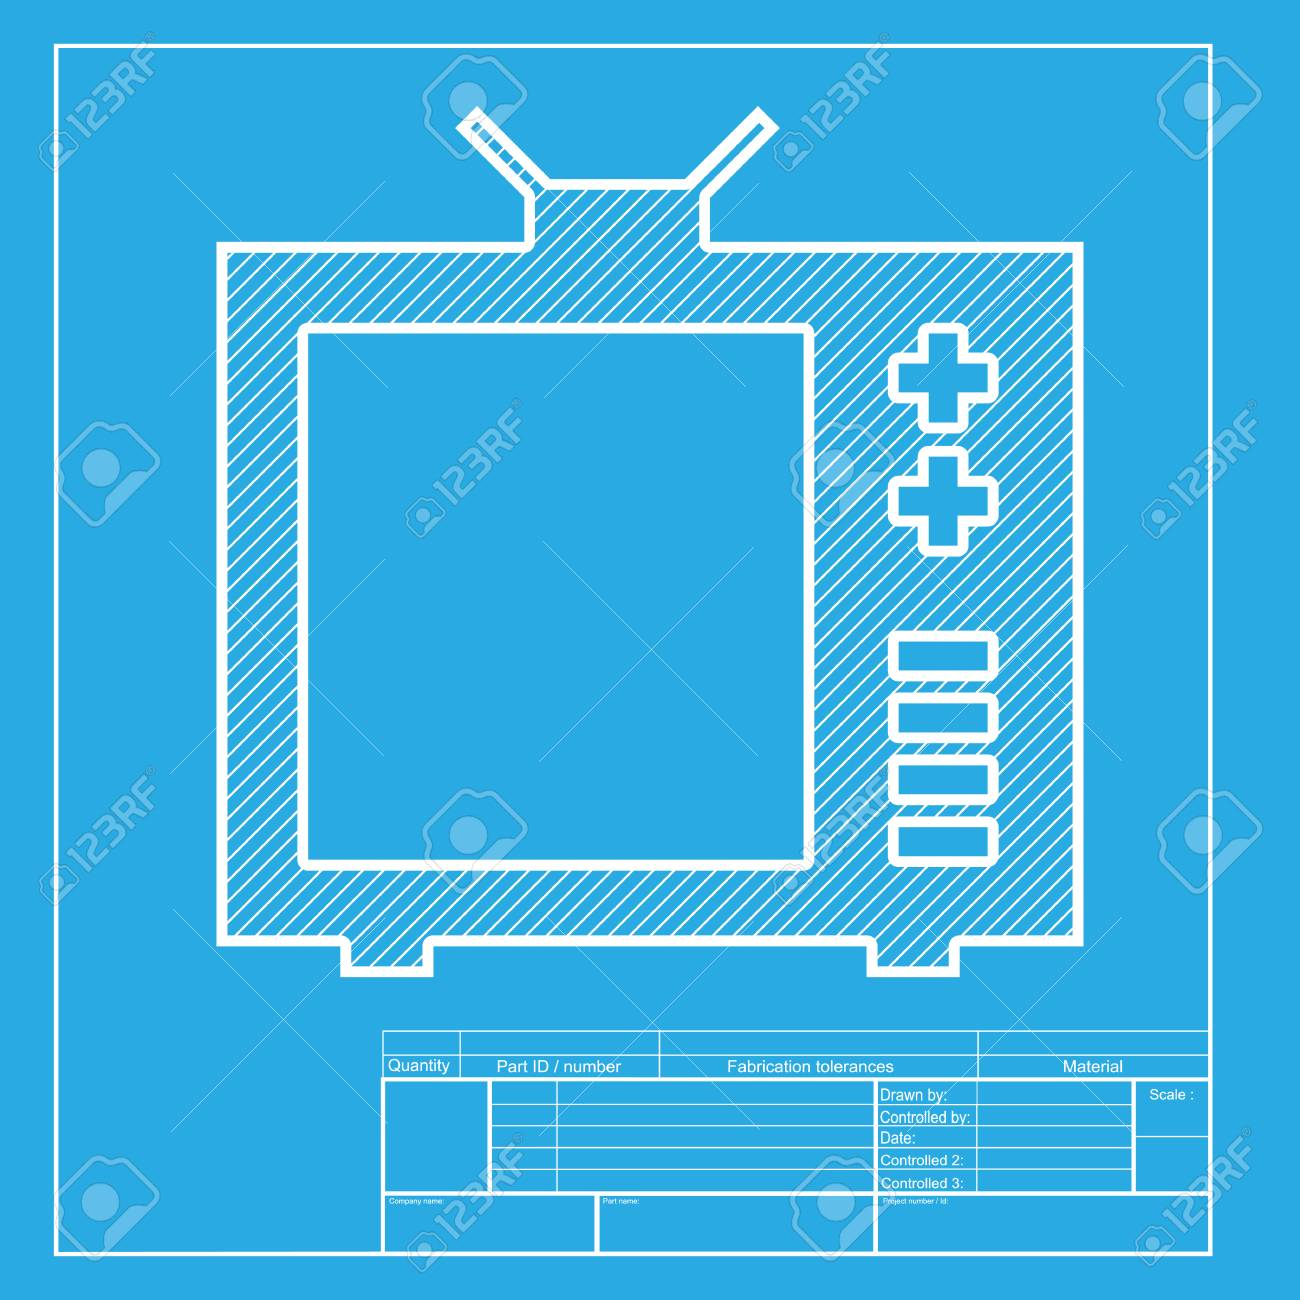 Tv sign illustration white section of icon on blueprint template white section of icon on blueprint template stock vector 58750663 malvernweather Choice Image